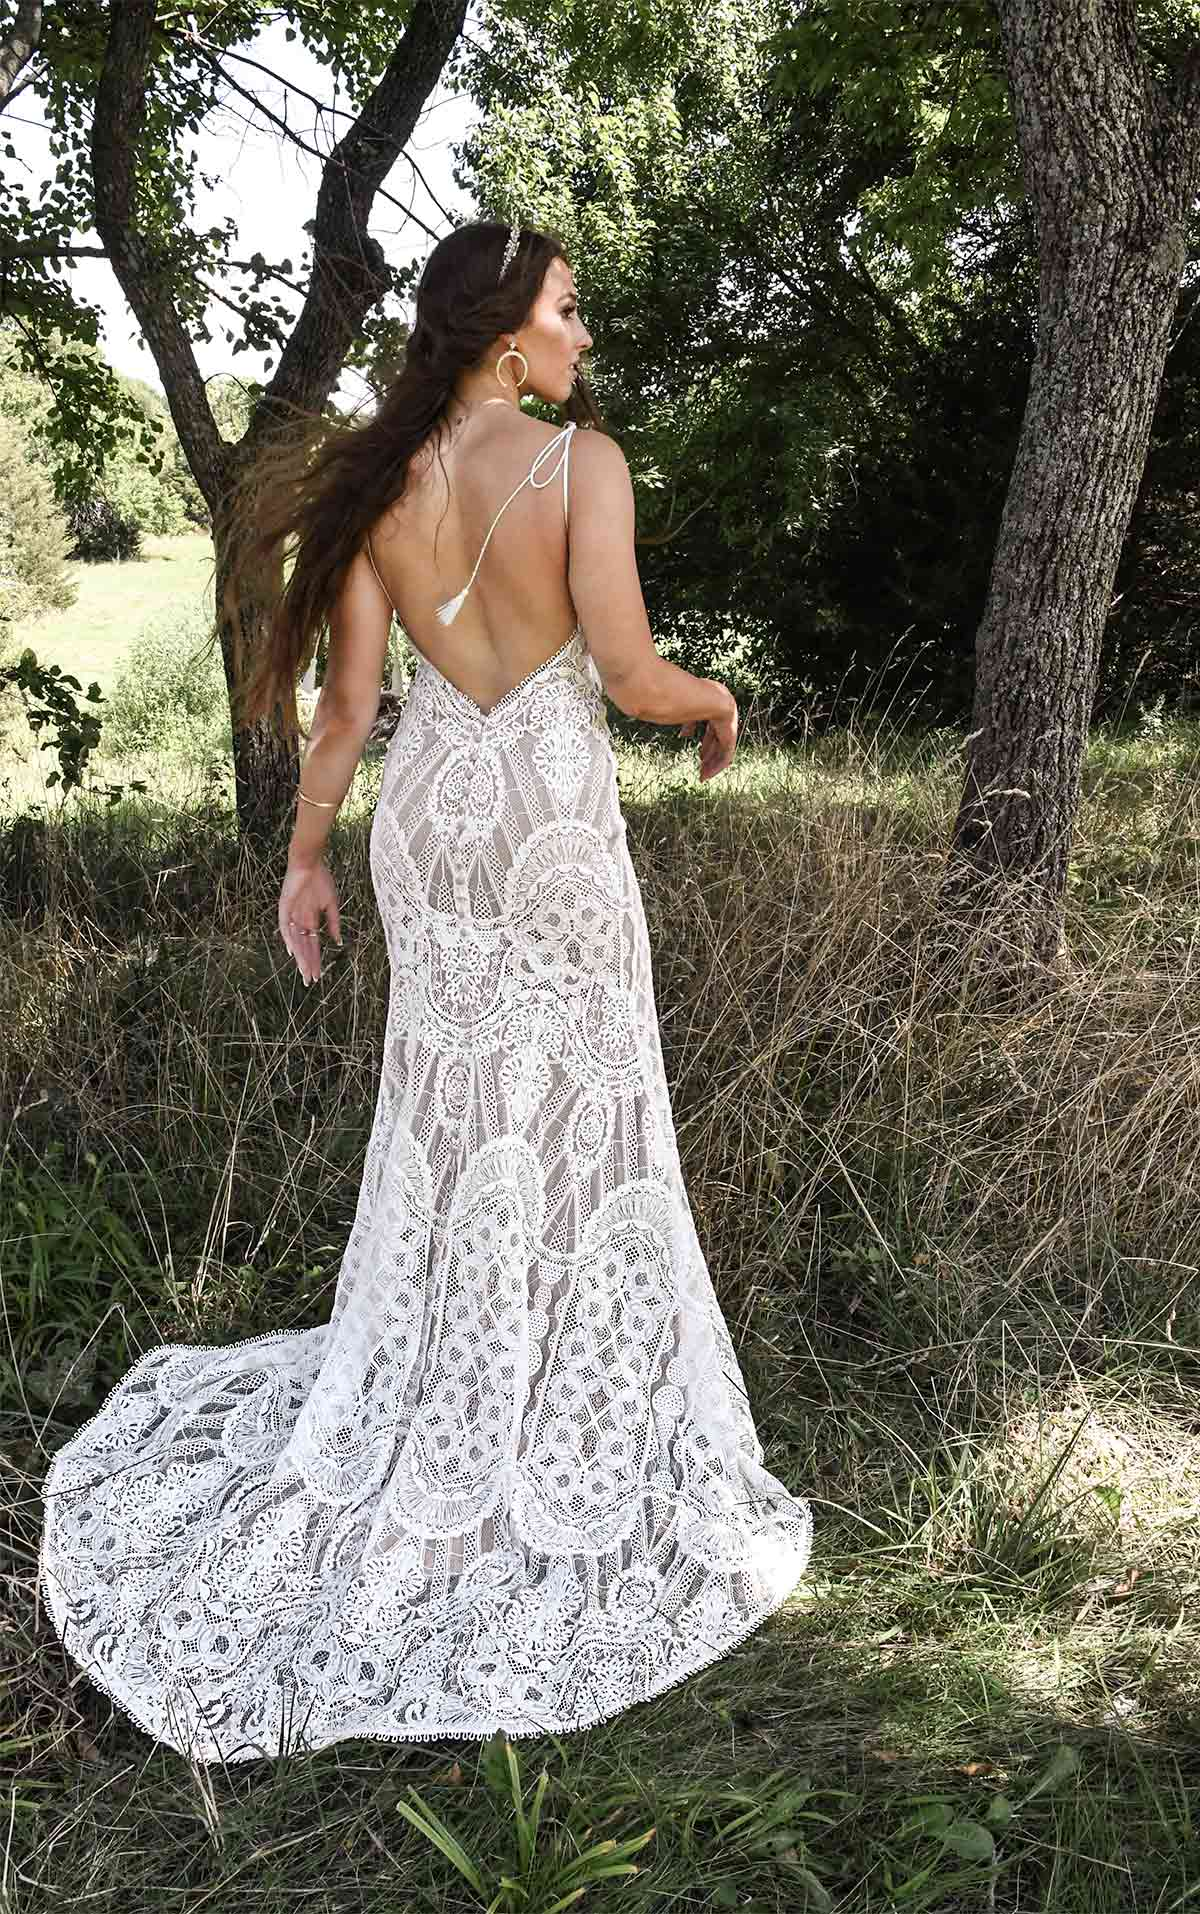 Arlo Vintage Lace Wedding Dress with Slit and Braided Straps by All Who Wander